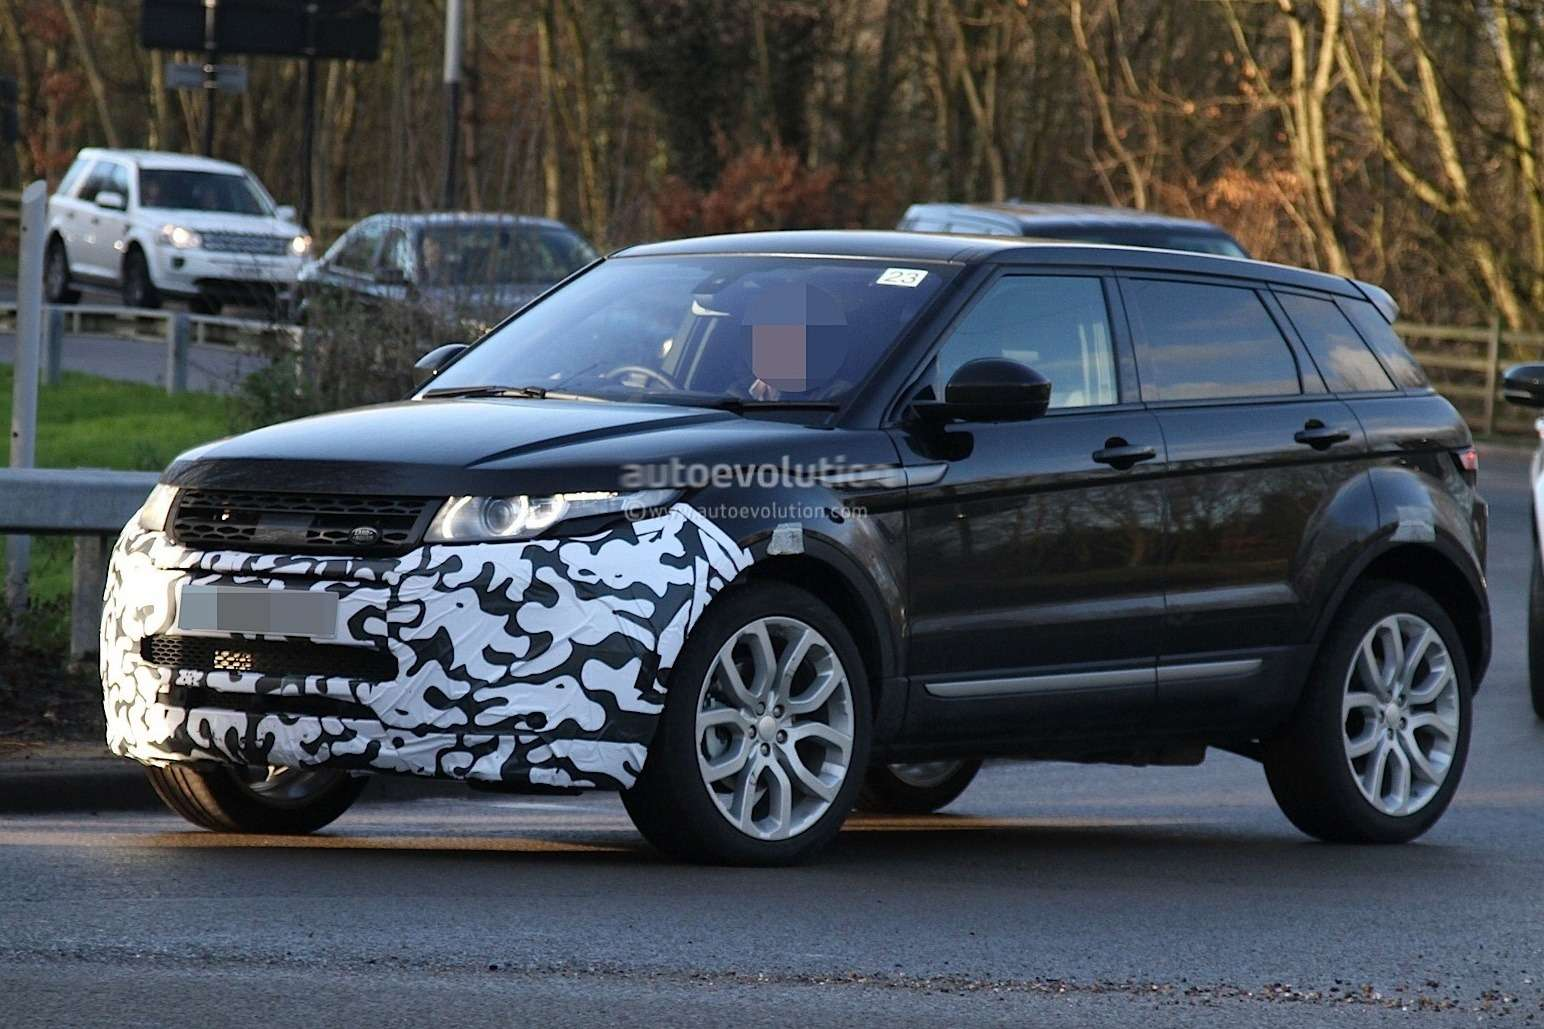 2016-range-rover-evoque-mid-life-facelift-spied-ingenium-diesel-engines-coming-to-us_7